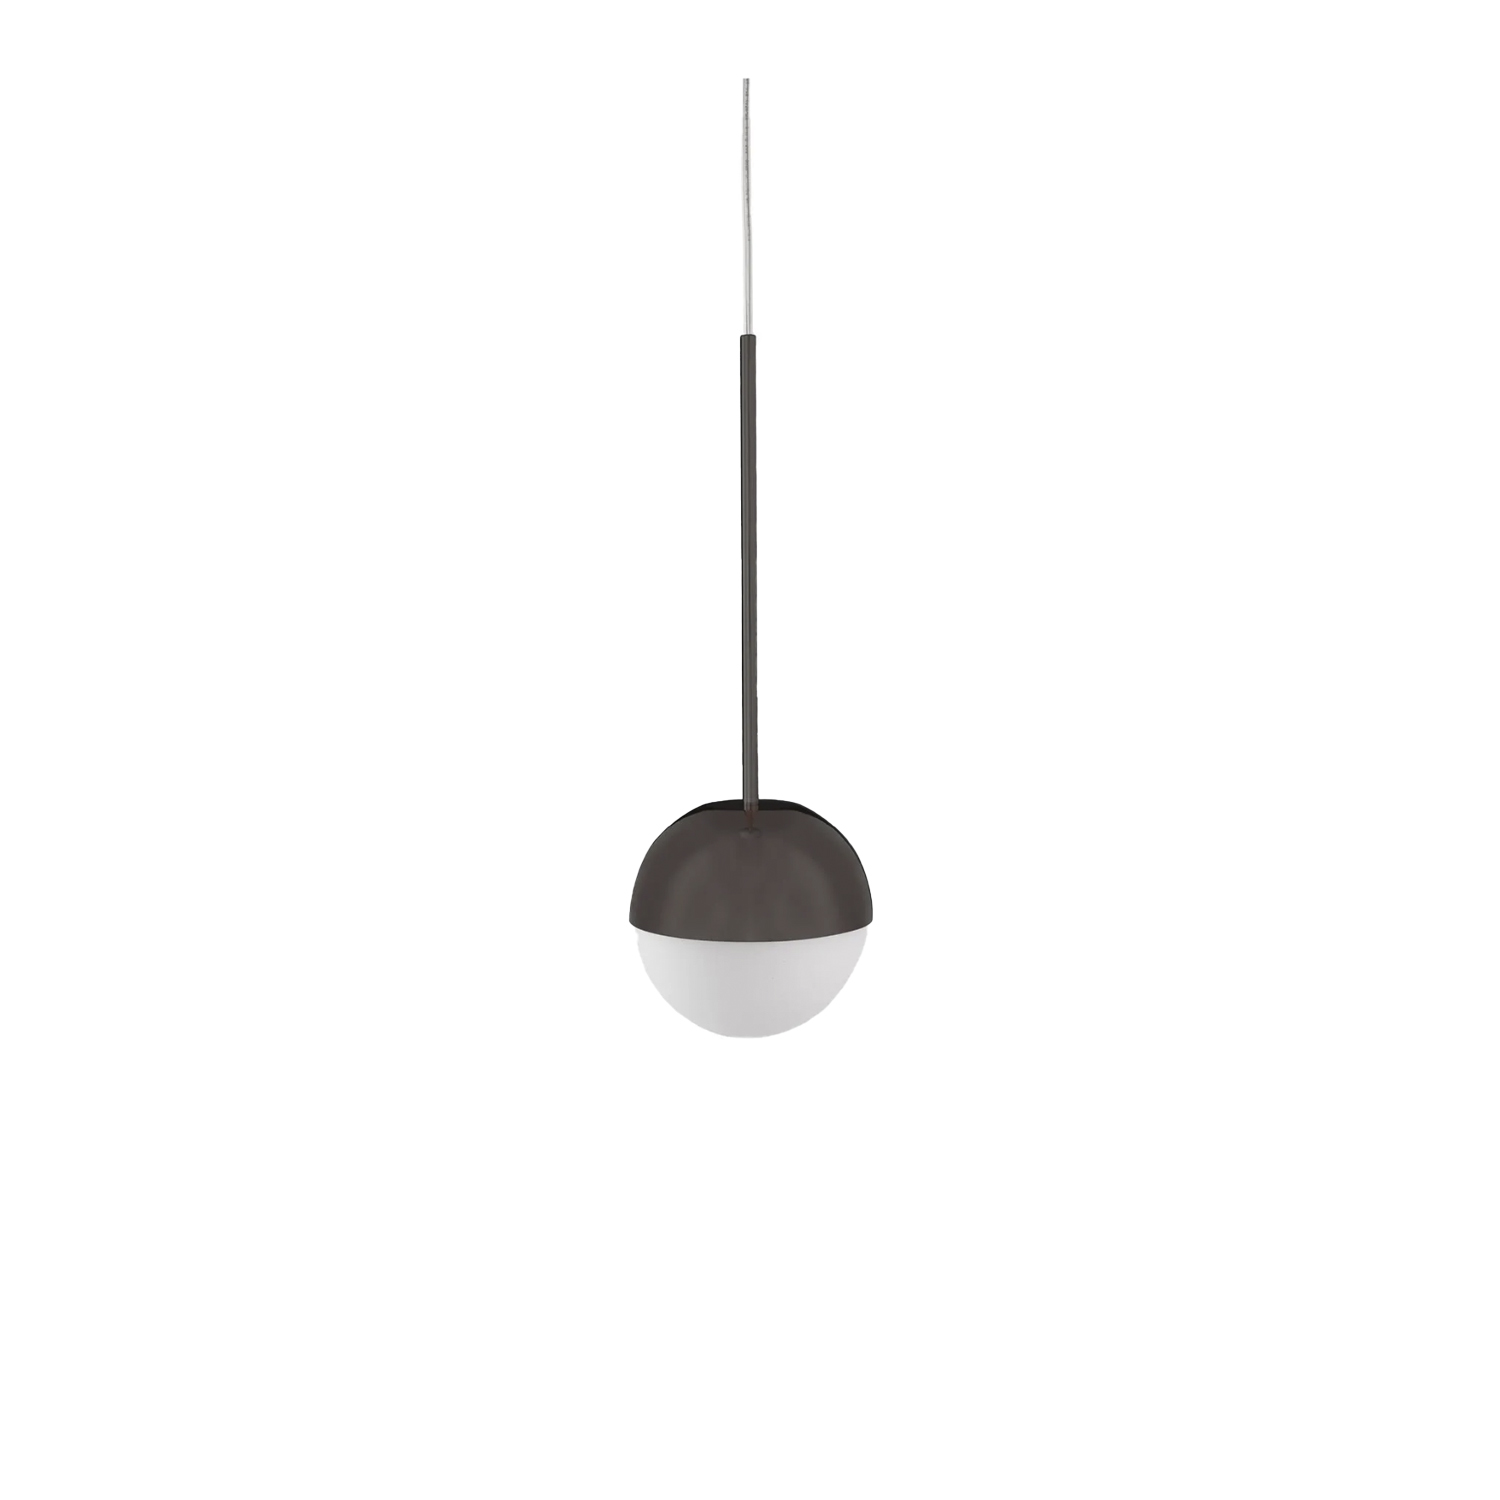 Pallina Suspension Lamp - The perfection of glass and sphere to create the most essential object of the collection. A must-have for every space of the house, inspired by the Italian theatre and Broadway musicals from 40's and 50's. Simplicity and seriality. Pallina. One, no one, one hundred thousand.  Suspension lamp with diffused and dimmable light. Frame made of chromed metal with double interchangeable stem. Diffuser made of opalyne blown glass with satin-finish. Transparent power cable. Painted polycarbonate ceiling rose. Bulb not included. | Matter of Stuff